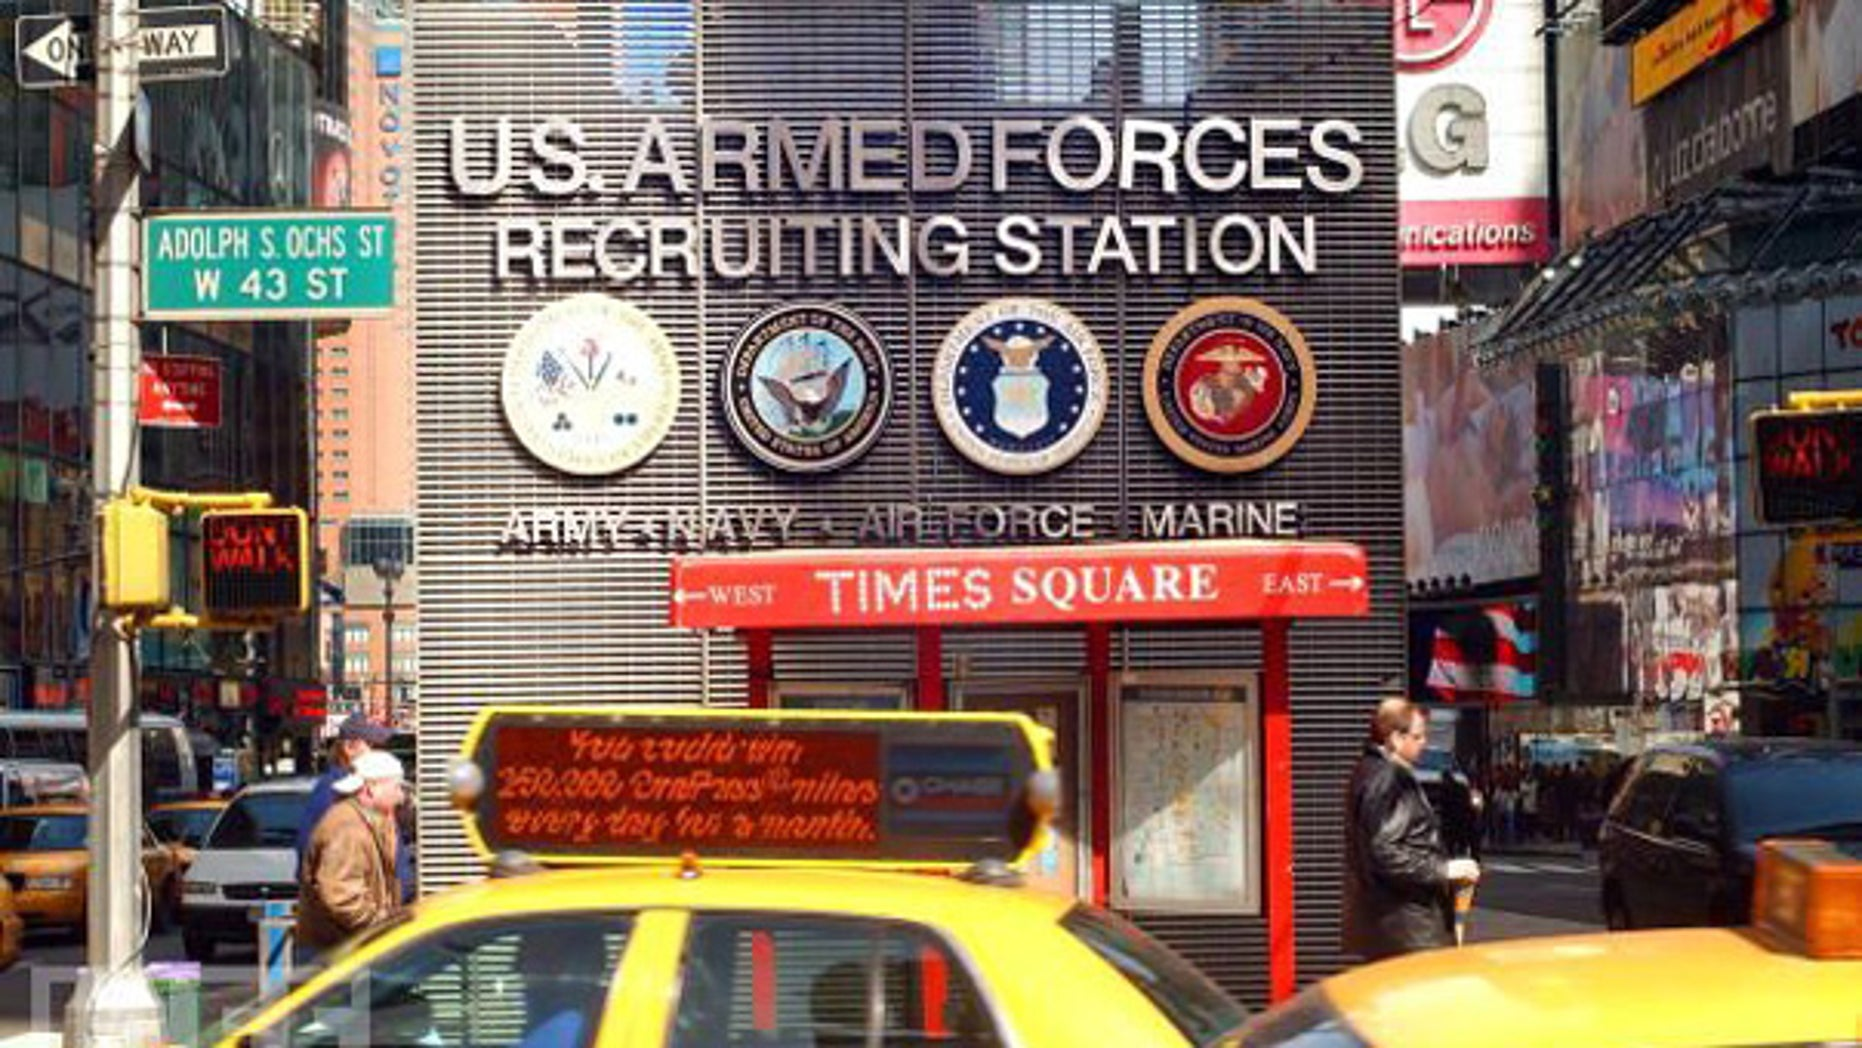 Taxis and pedestrians pass by the Times Square U.S. Armed Forces Recruiting Station.